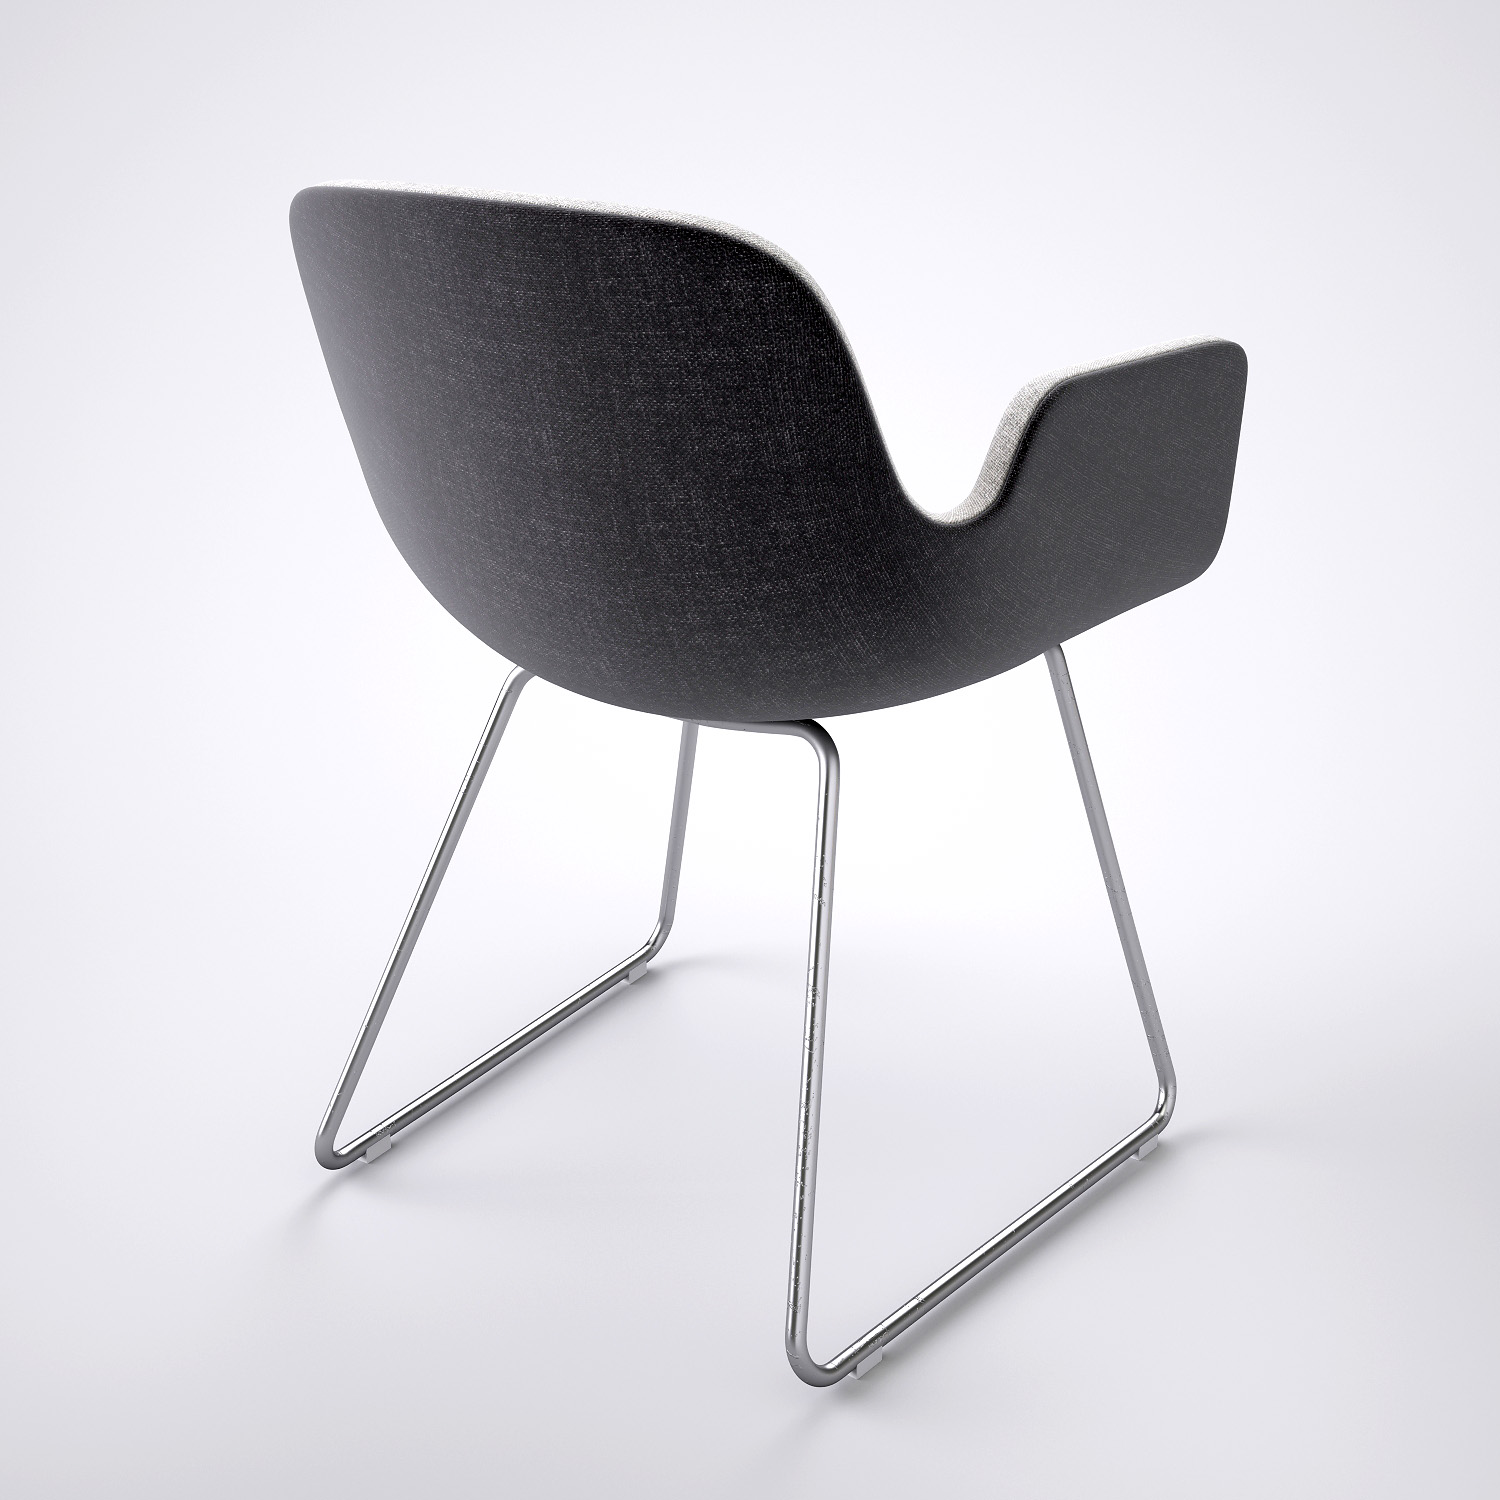 ... Chair Lapalma Pass 3d Model Max Obj Mtl Fbx Unitypackage Prefab 4 ...